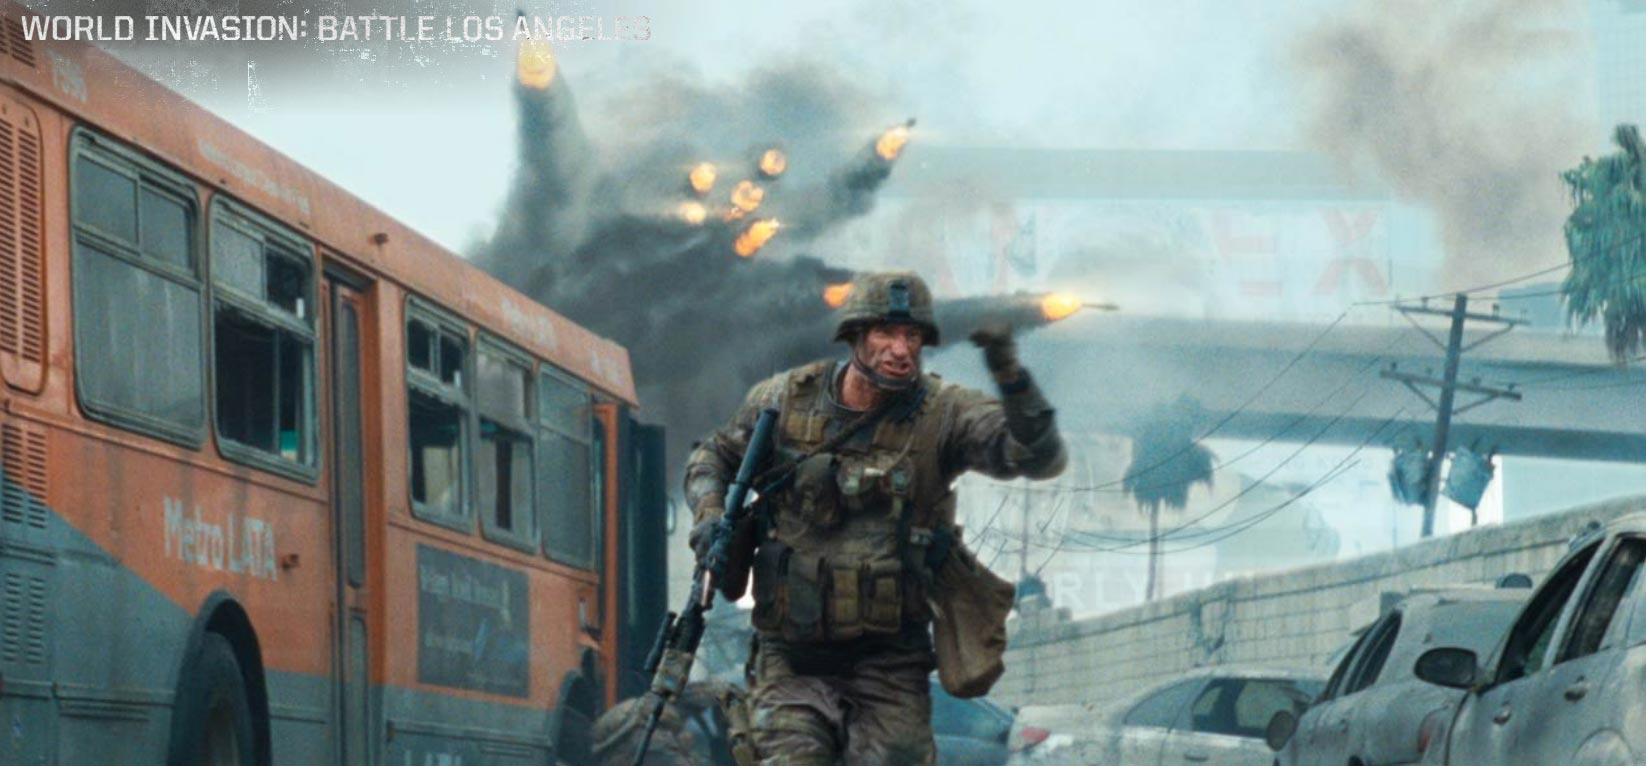 world invasion battle los angeles imdb